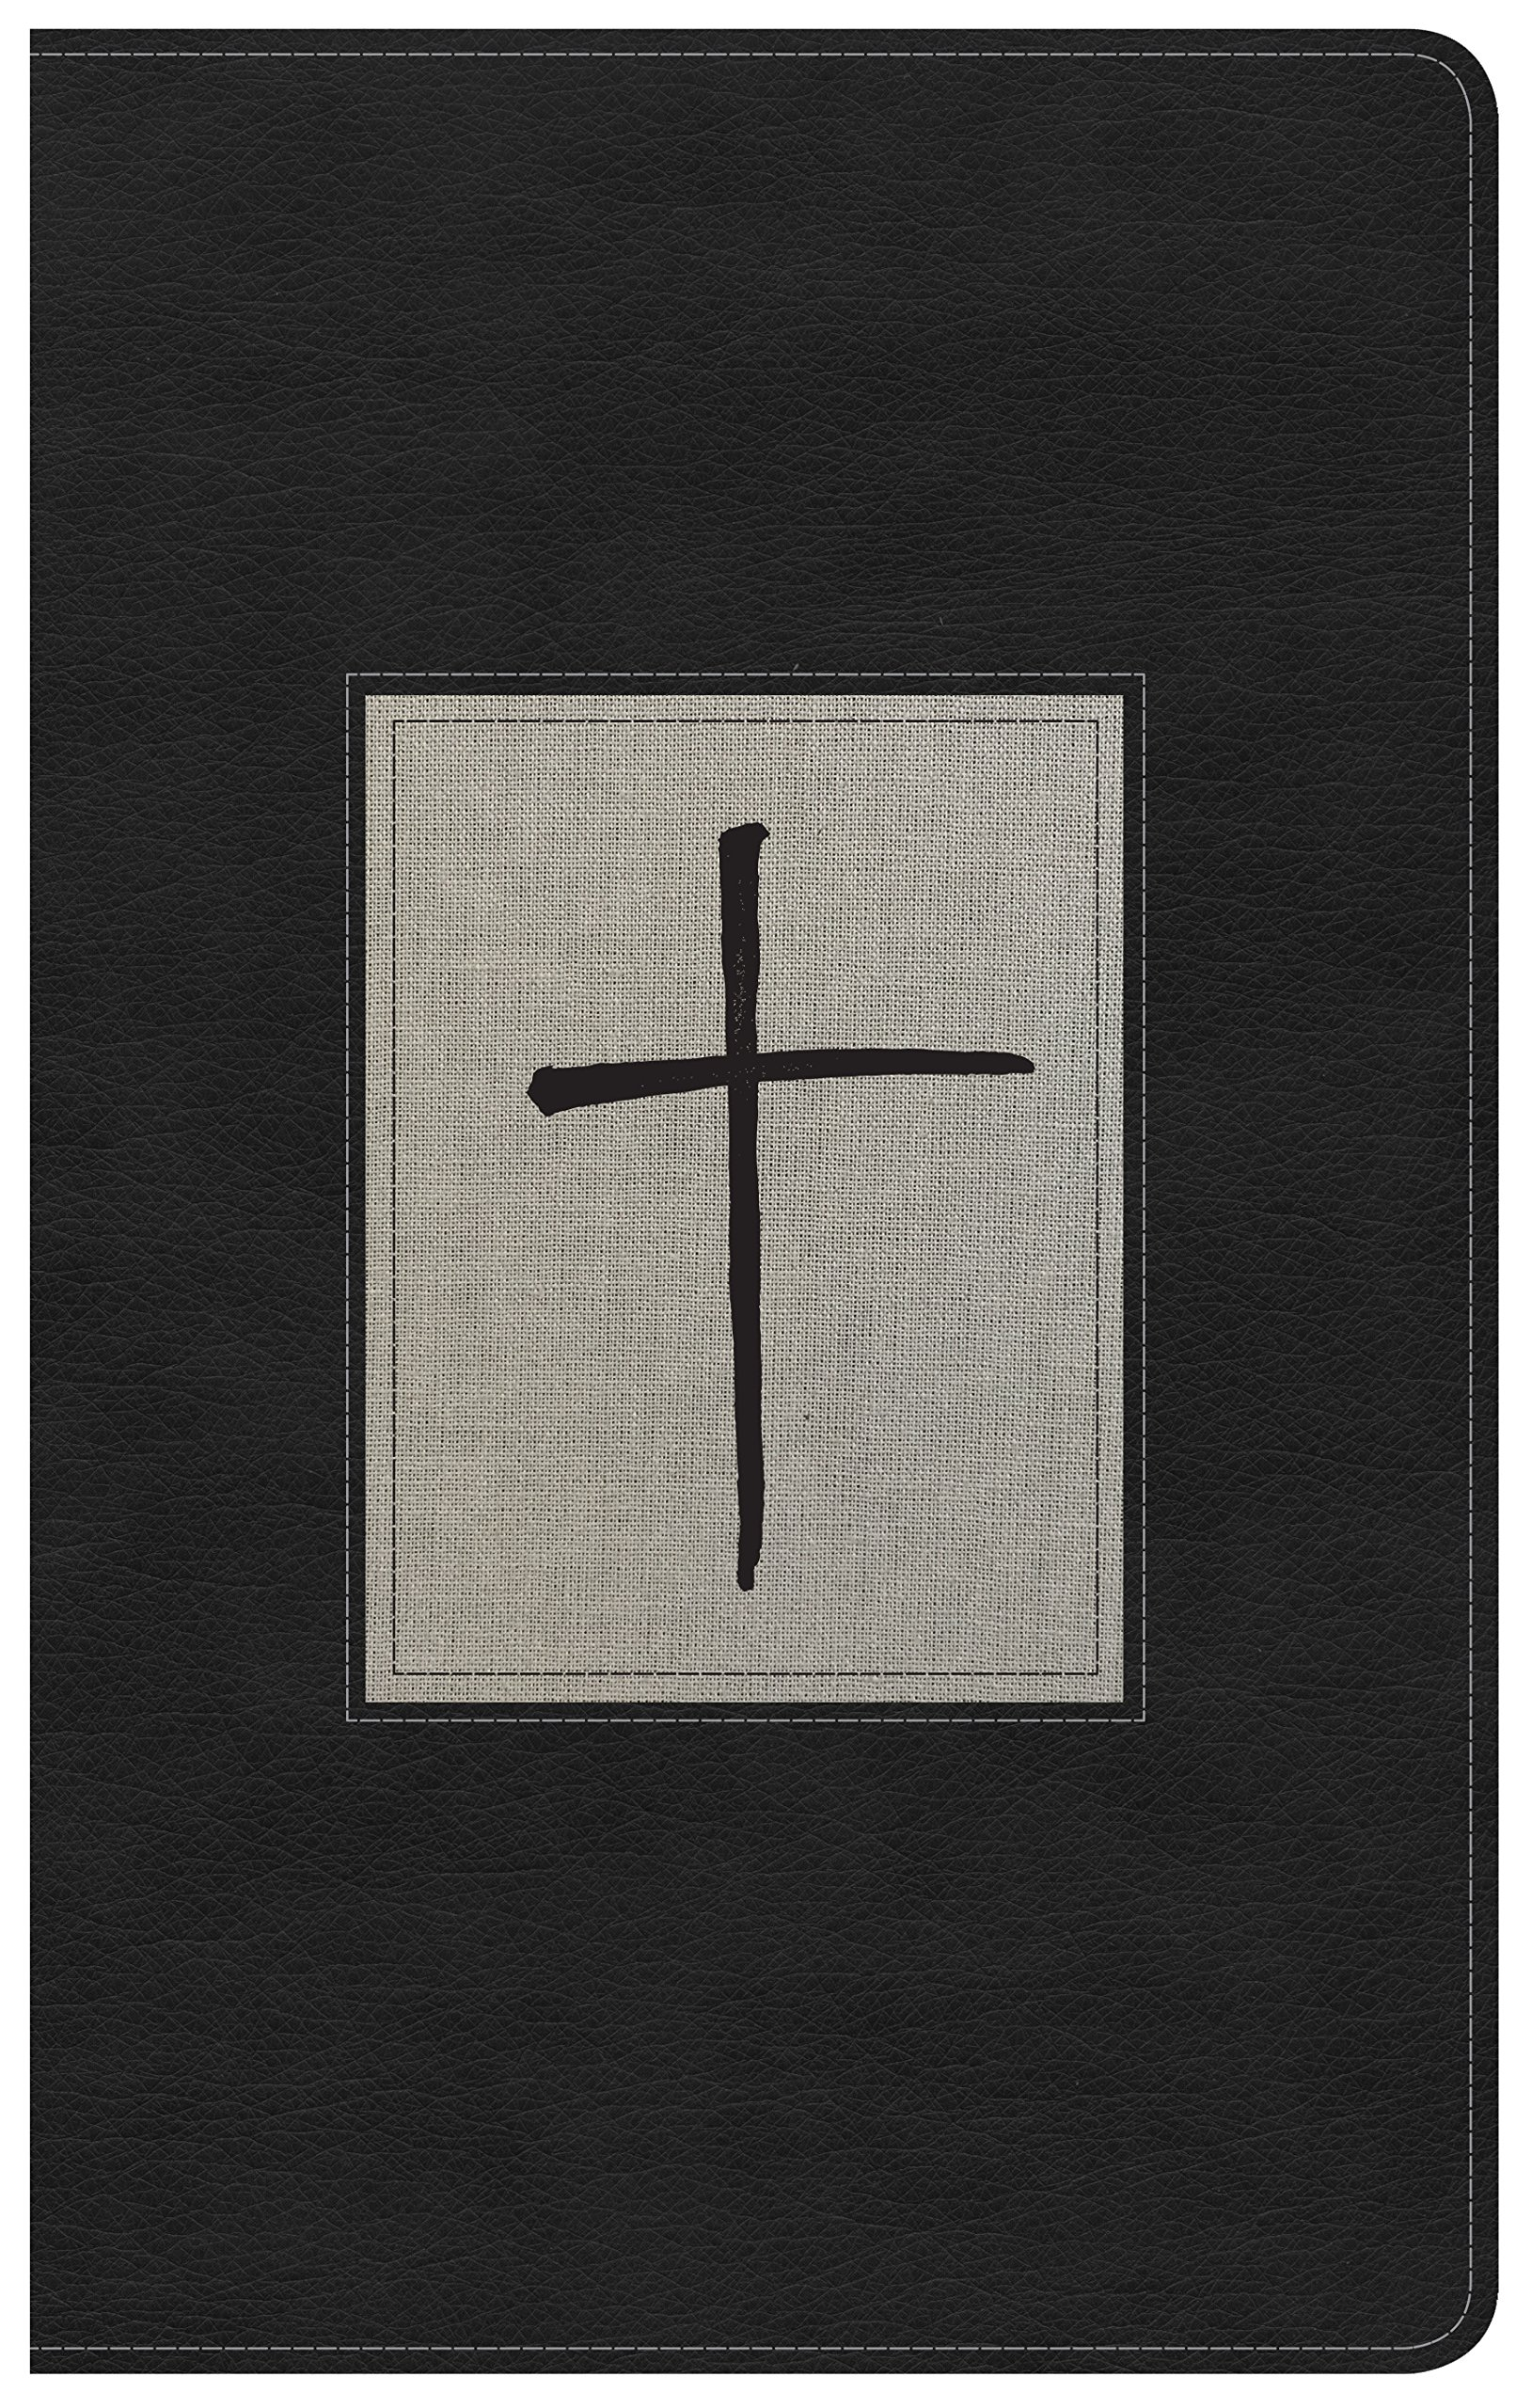 Read Online NKJV Ultrathin Reference Bible, Black/Gray Deluxe LeatherTouch, Indexed pdf